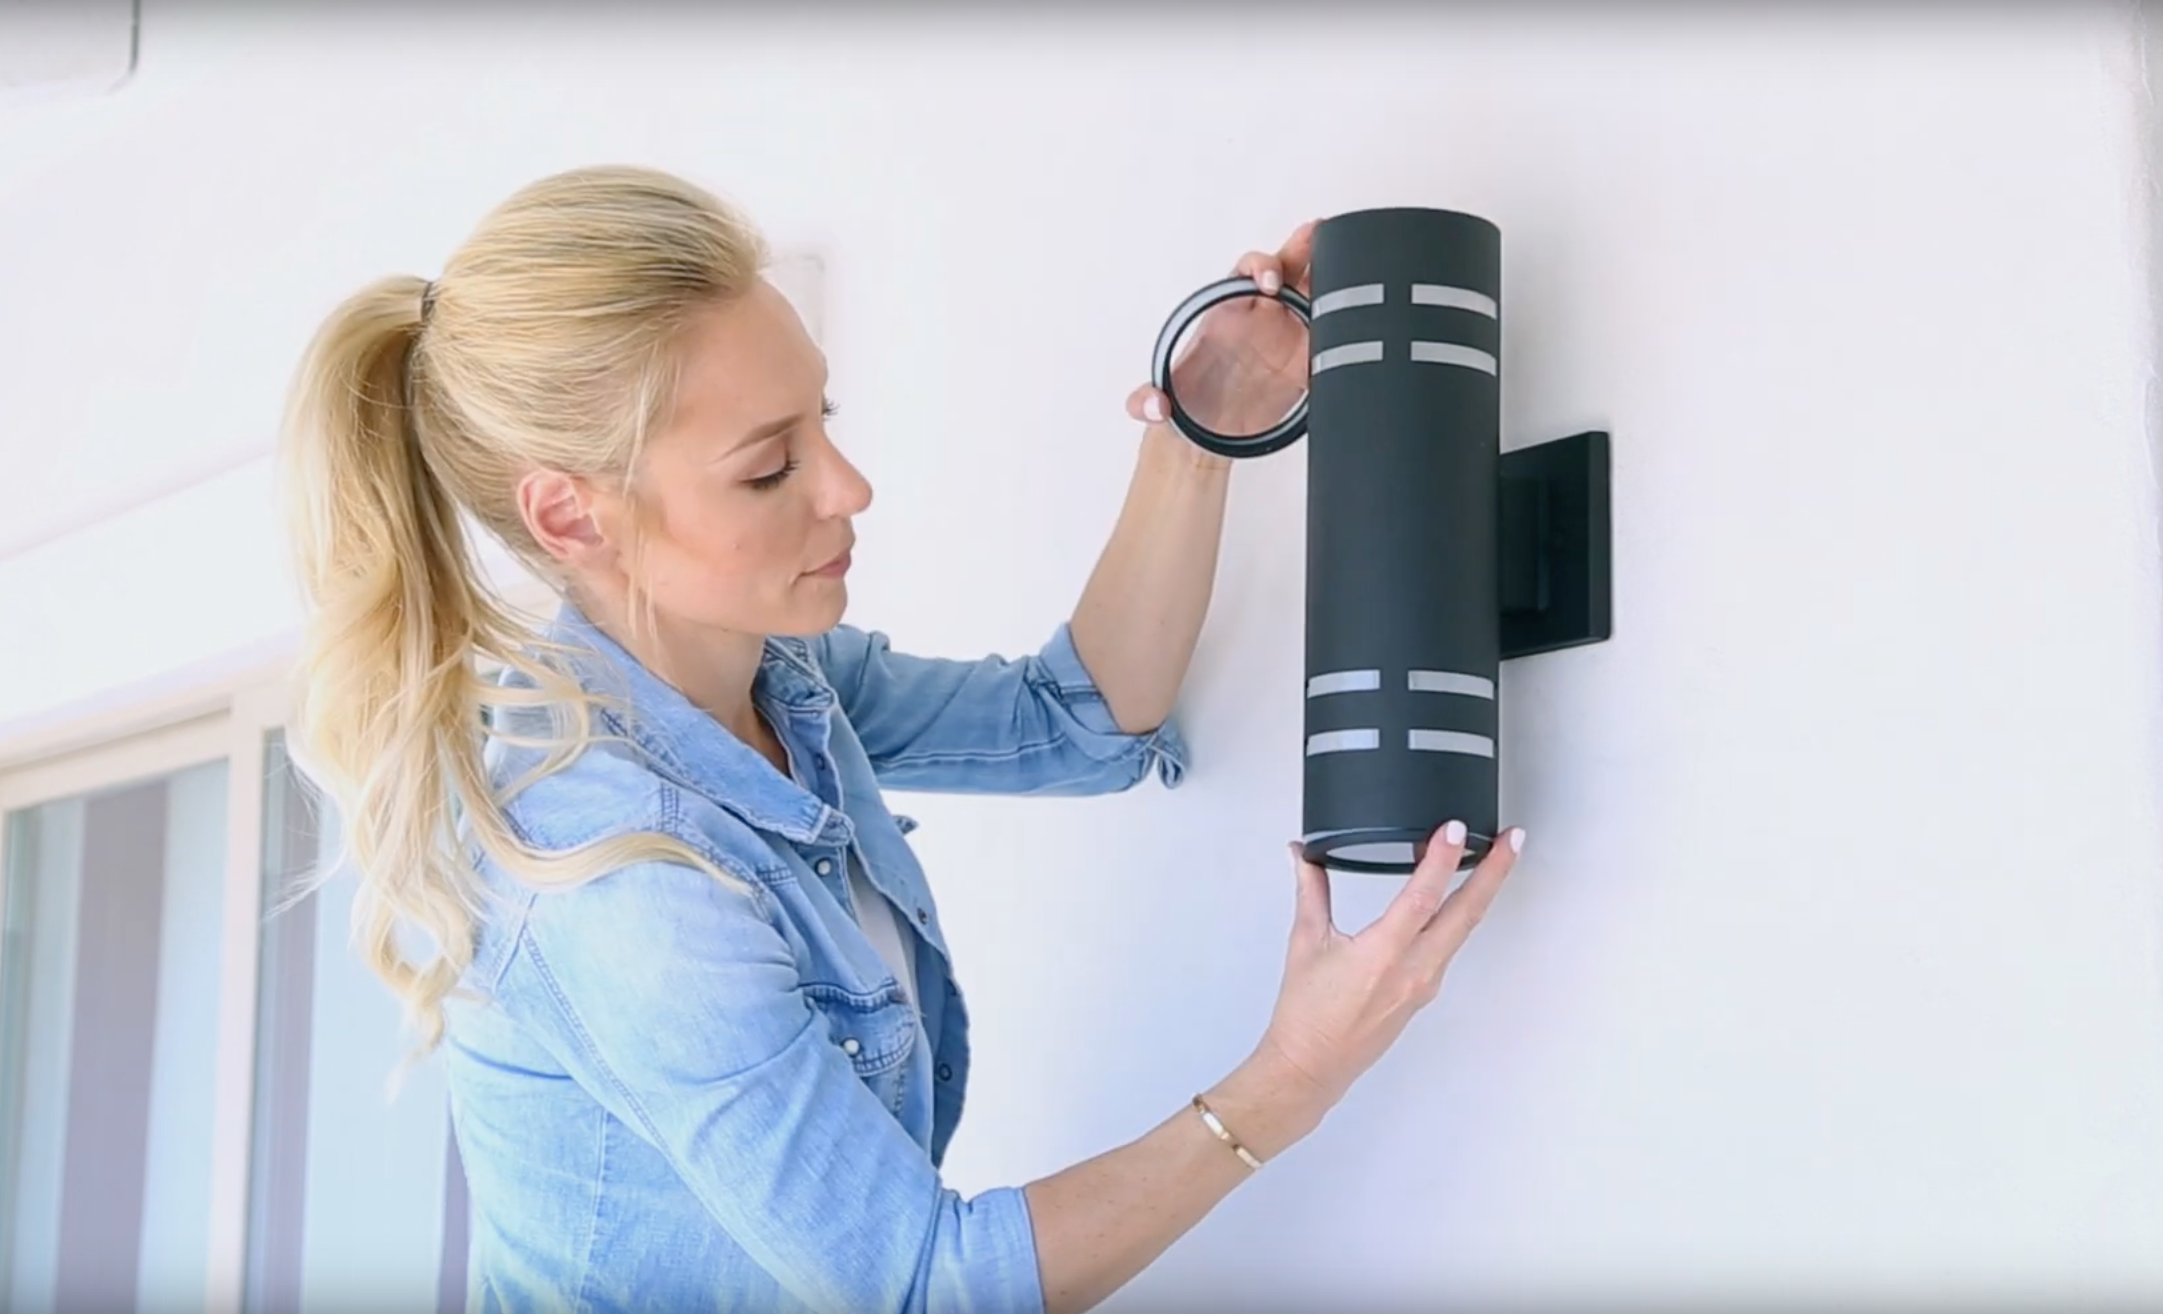 How to Install an Outdoor Wall Light